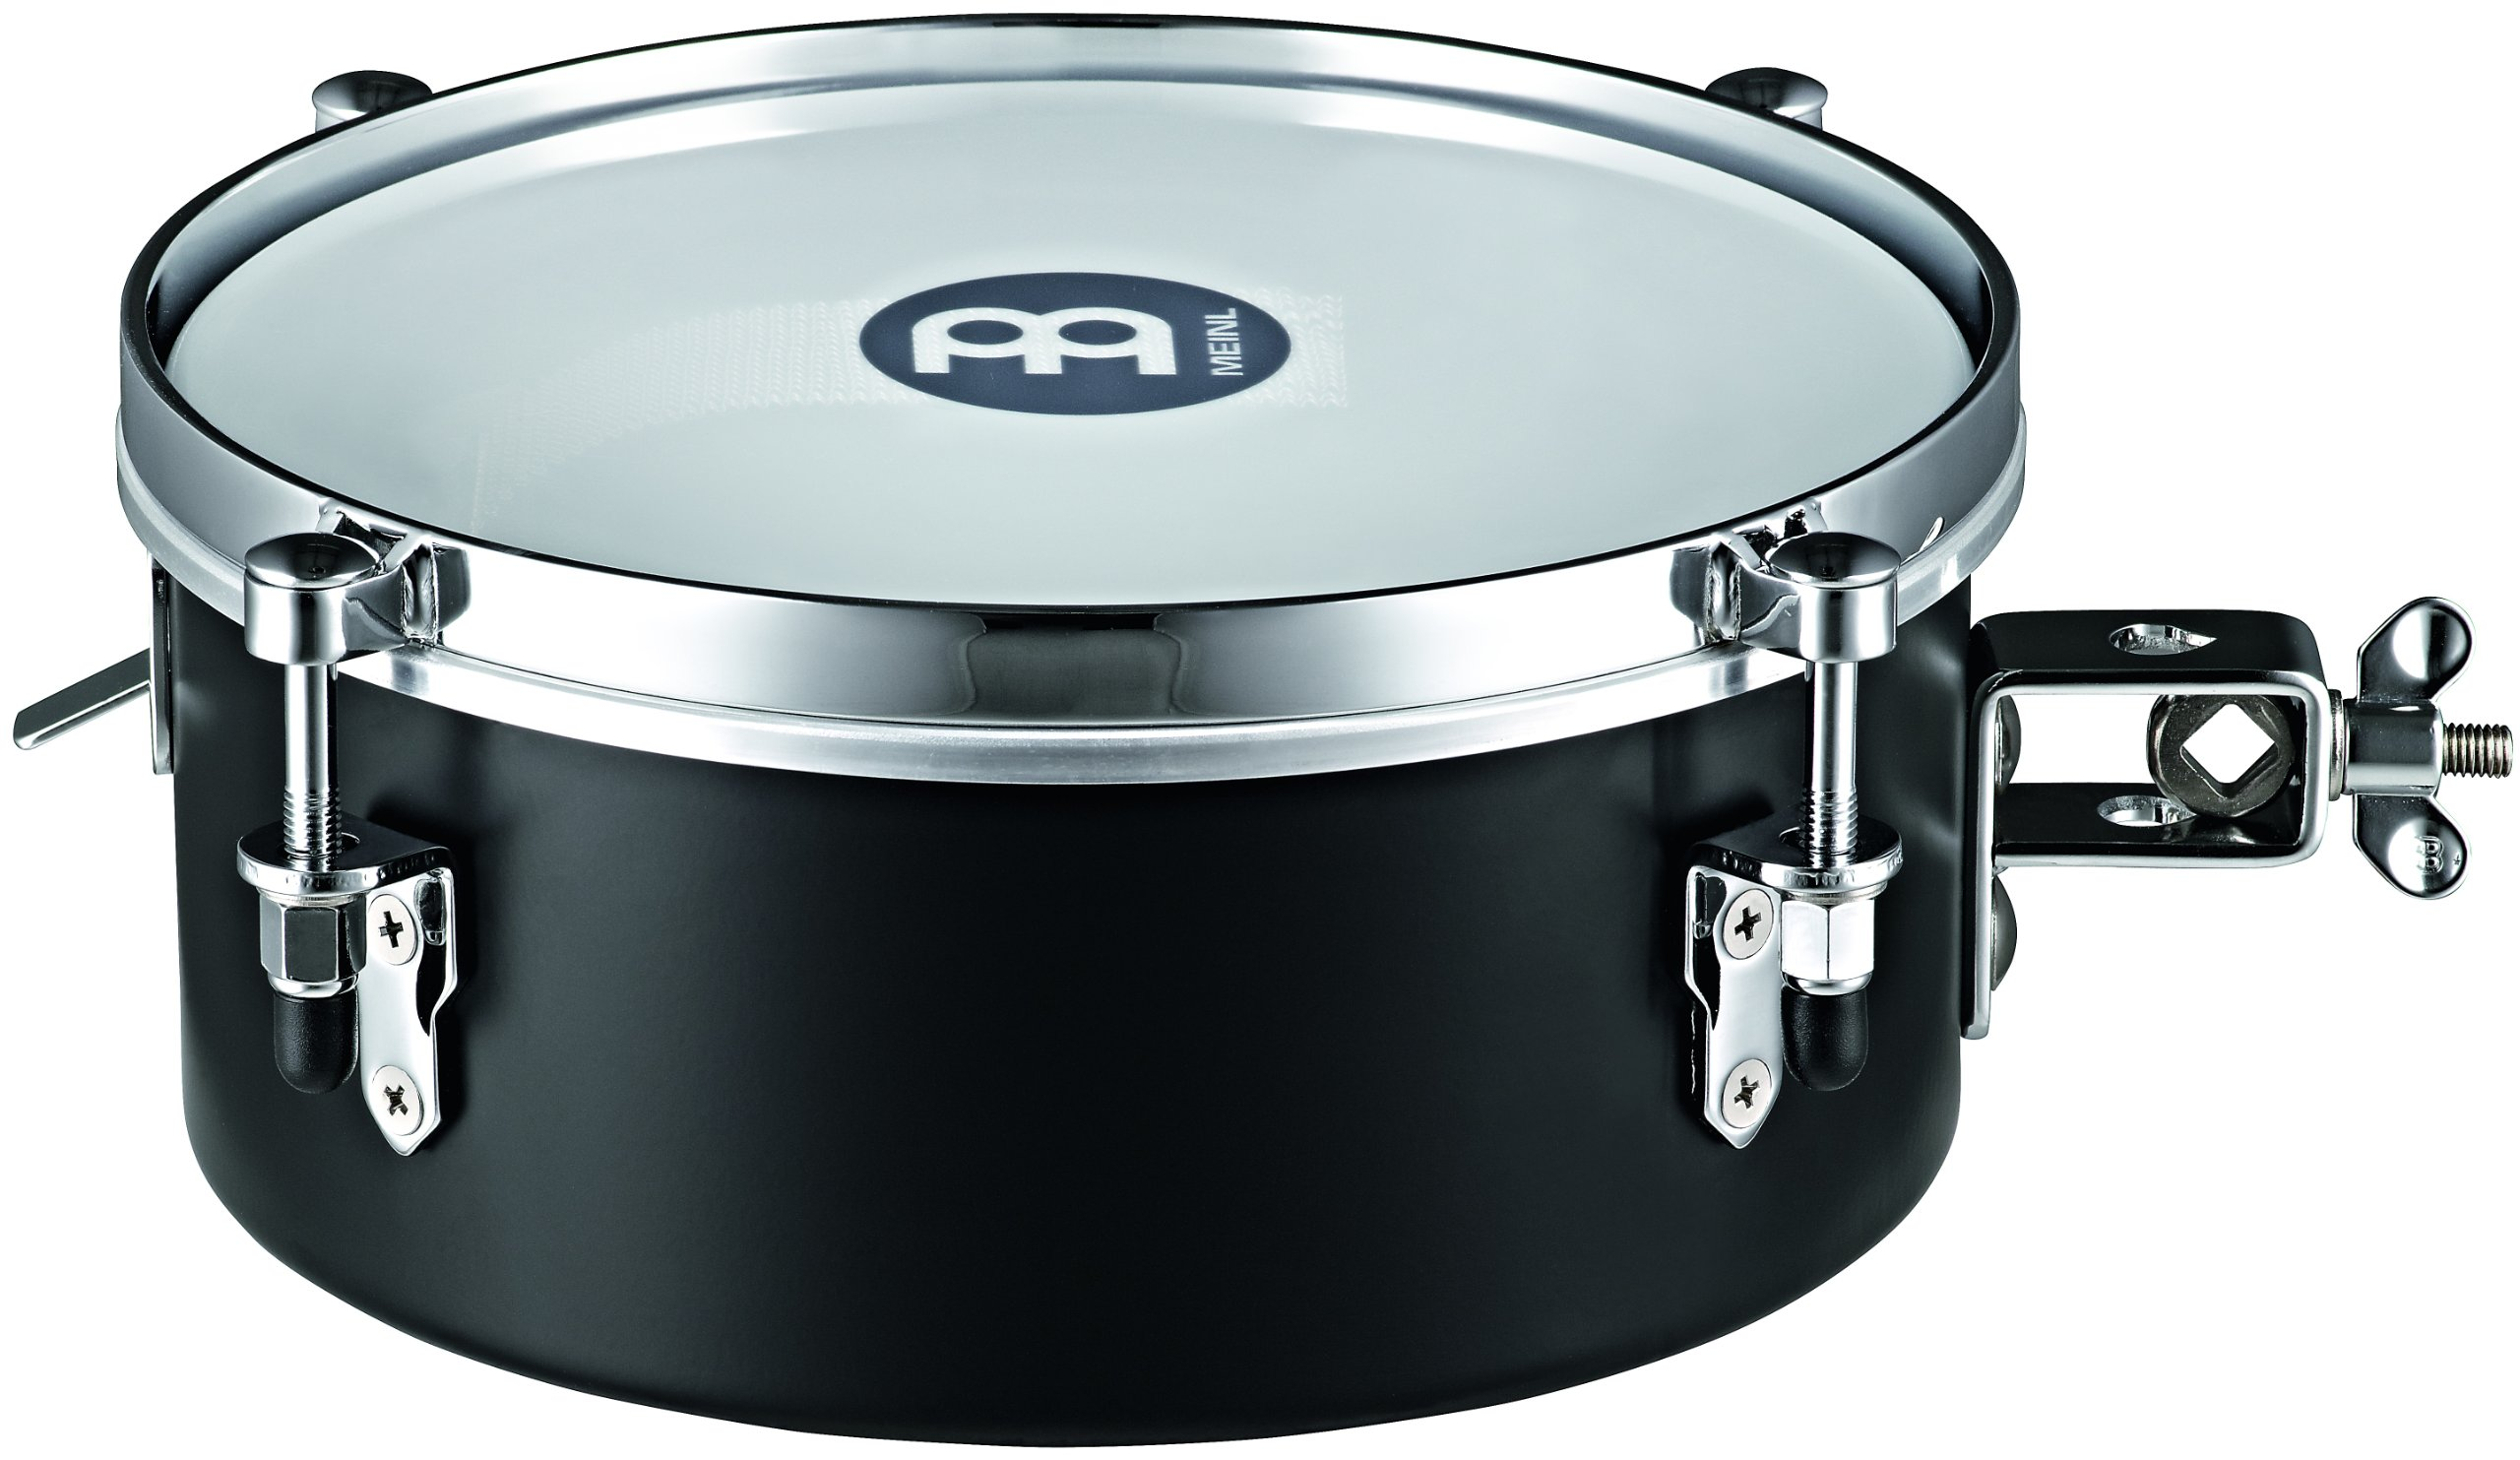 Meinl Percussion MDST10BK 10-Inch Steel Mountable Drummer Snare Timbale, Black by Meinl Percussion